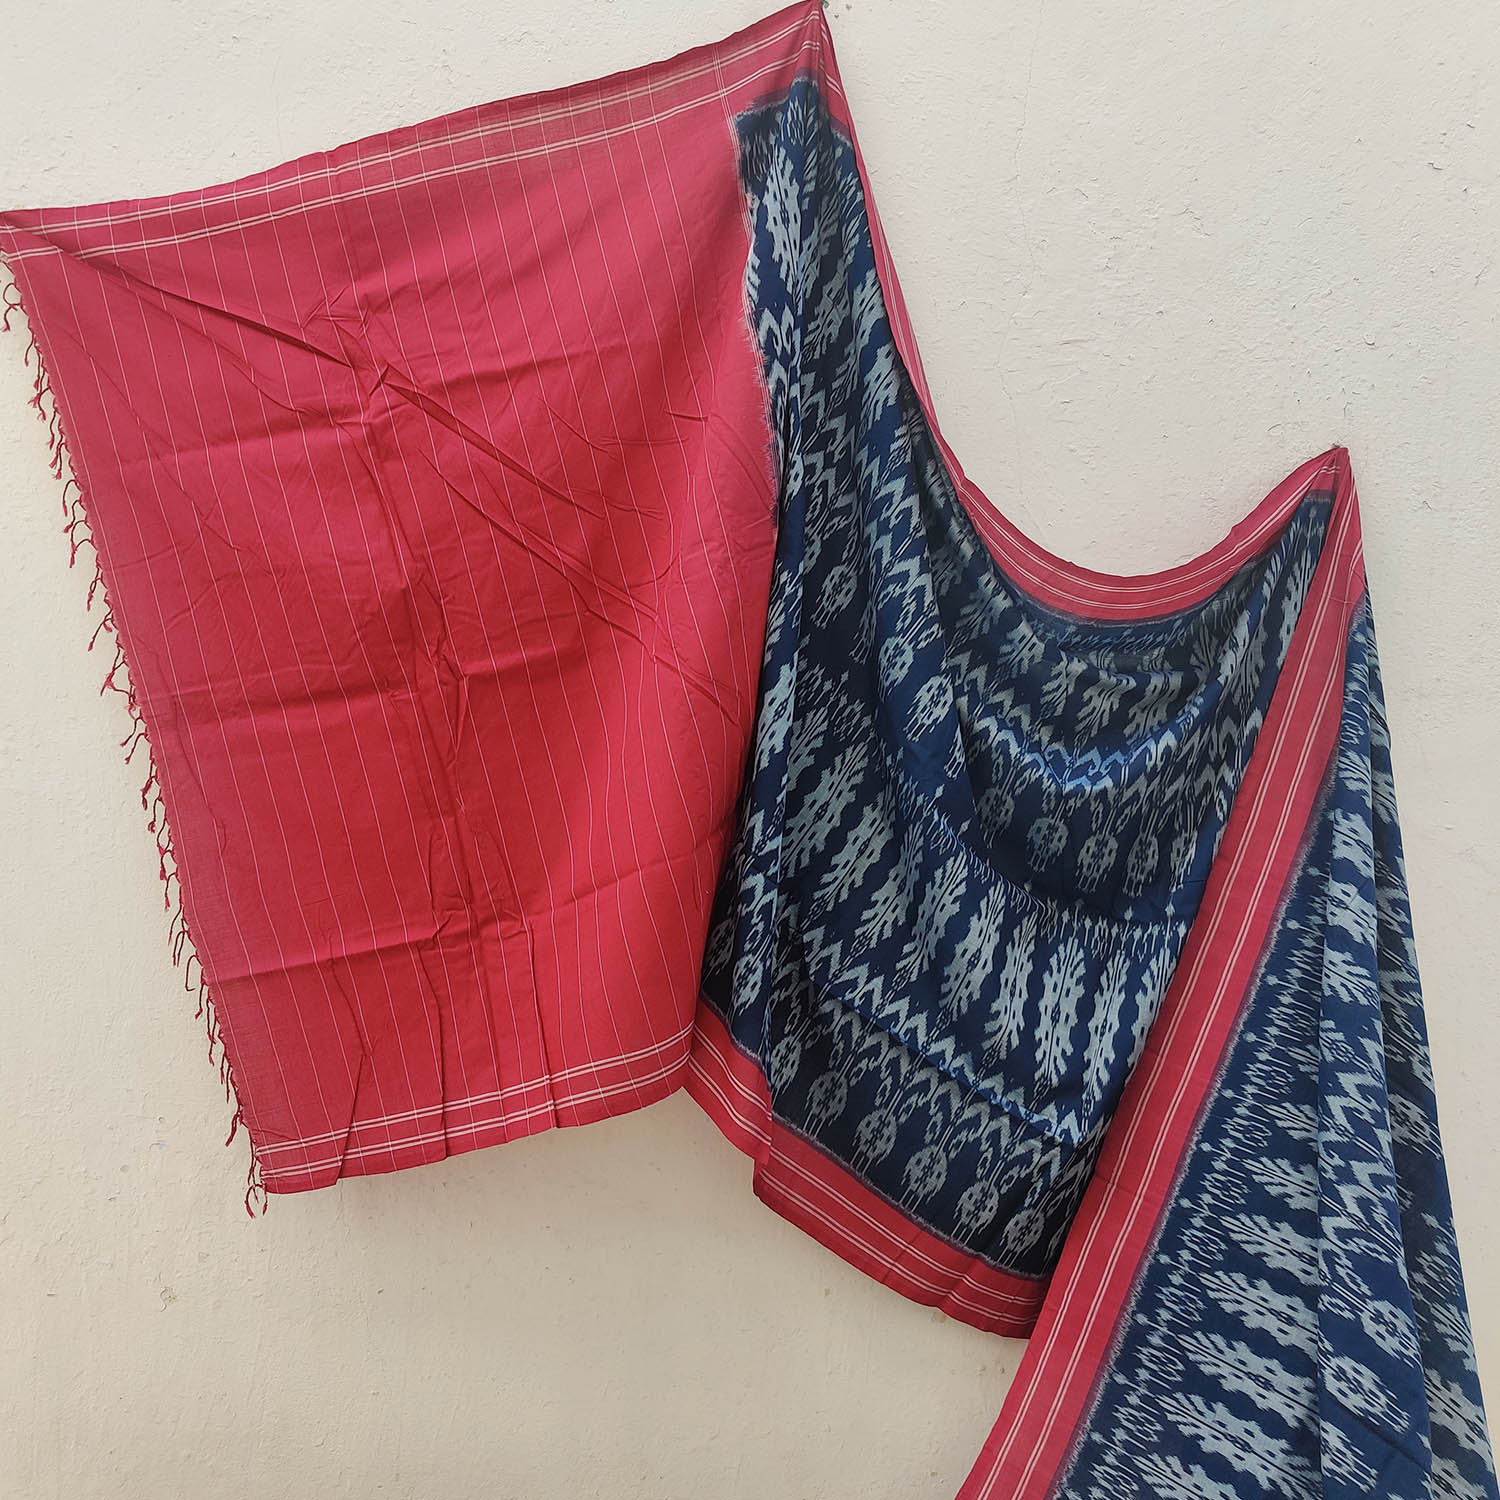 Indigo Blue & Red Ikat Cotton Saree with South Asian Weave